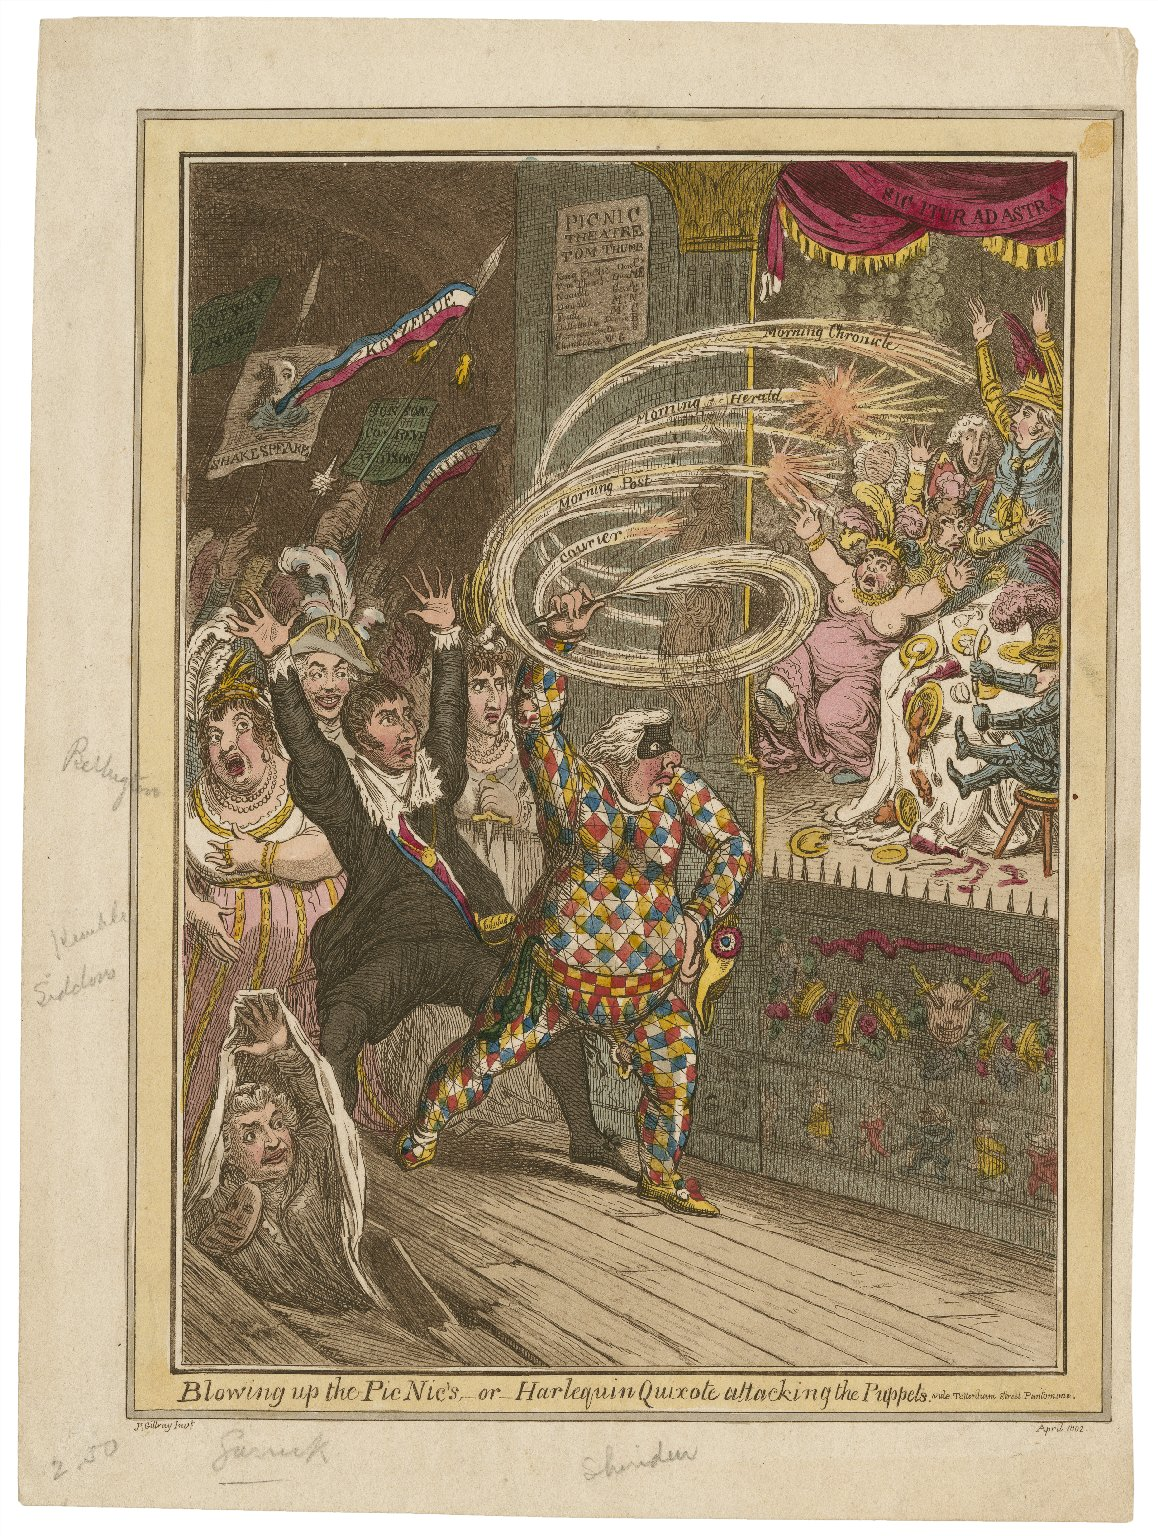 Blowing up the Pic Nic's, or, Harlequin Quixote attacking the puppets. Vide Tottenham street pantomime [graphic] / Js. Gillray, invt.